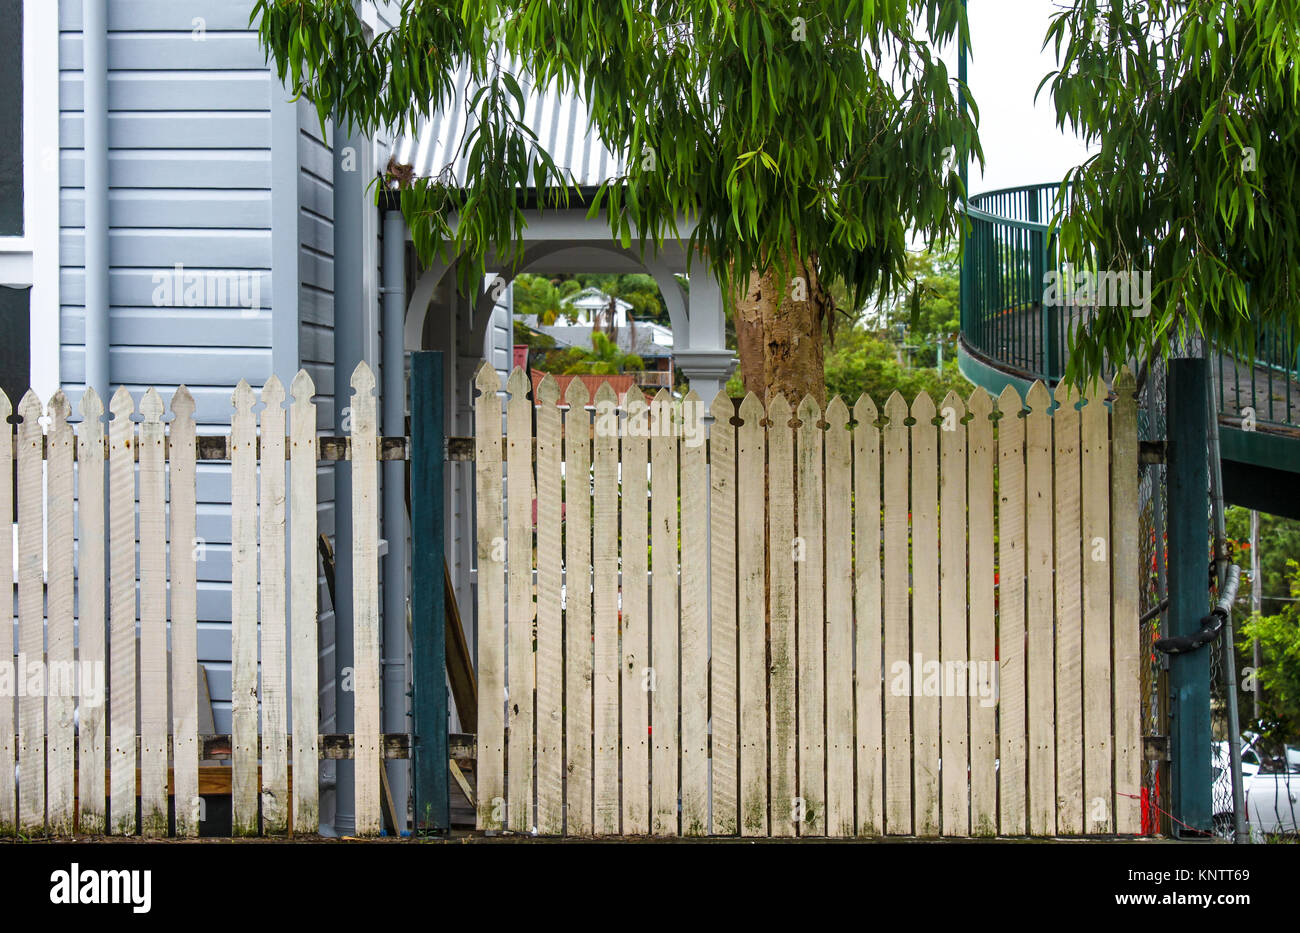 Common neighborhood scene in Brisbane Australia - old picket fence next to houses and tropical vegetation - Stock Image